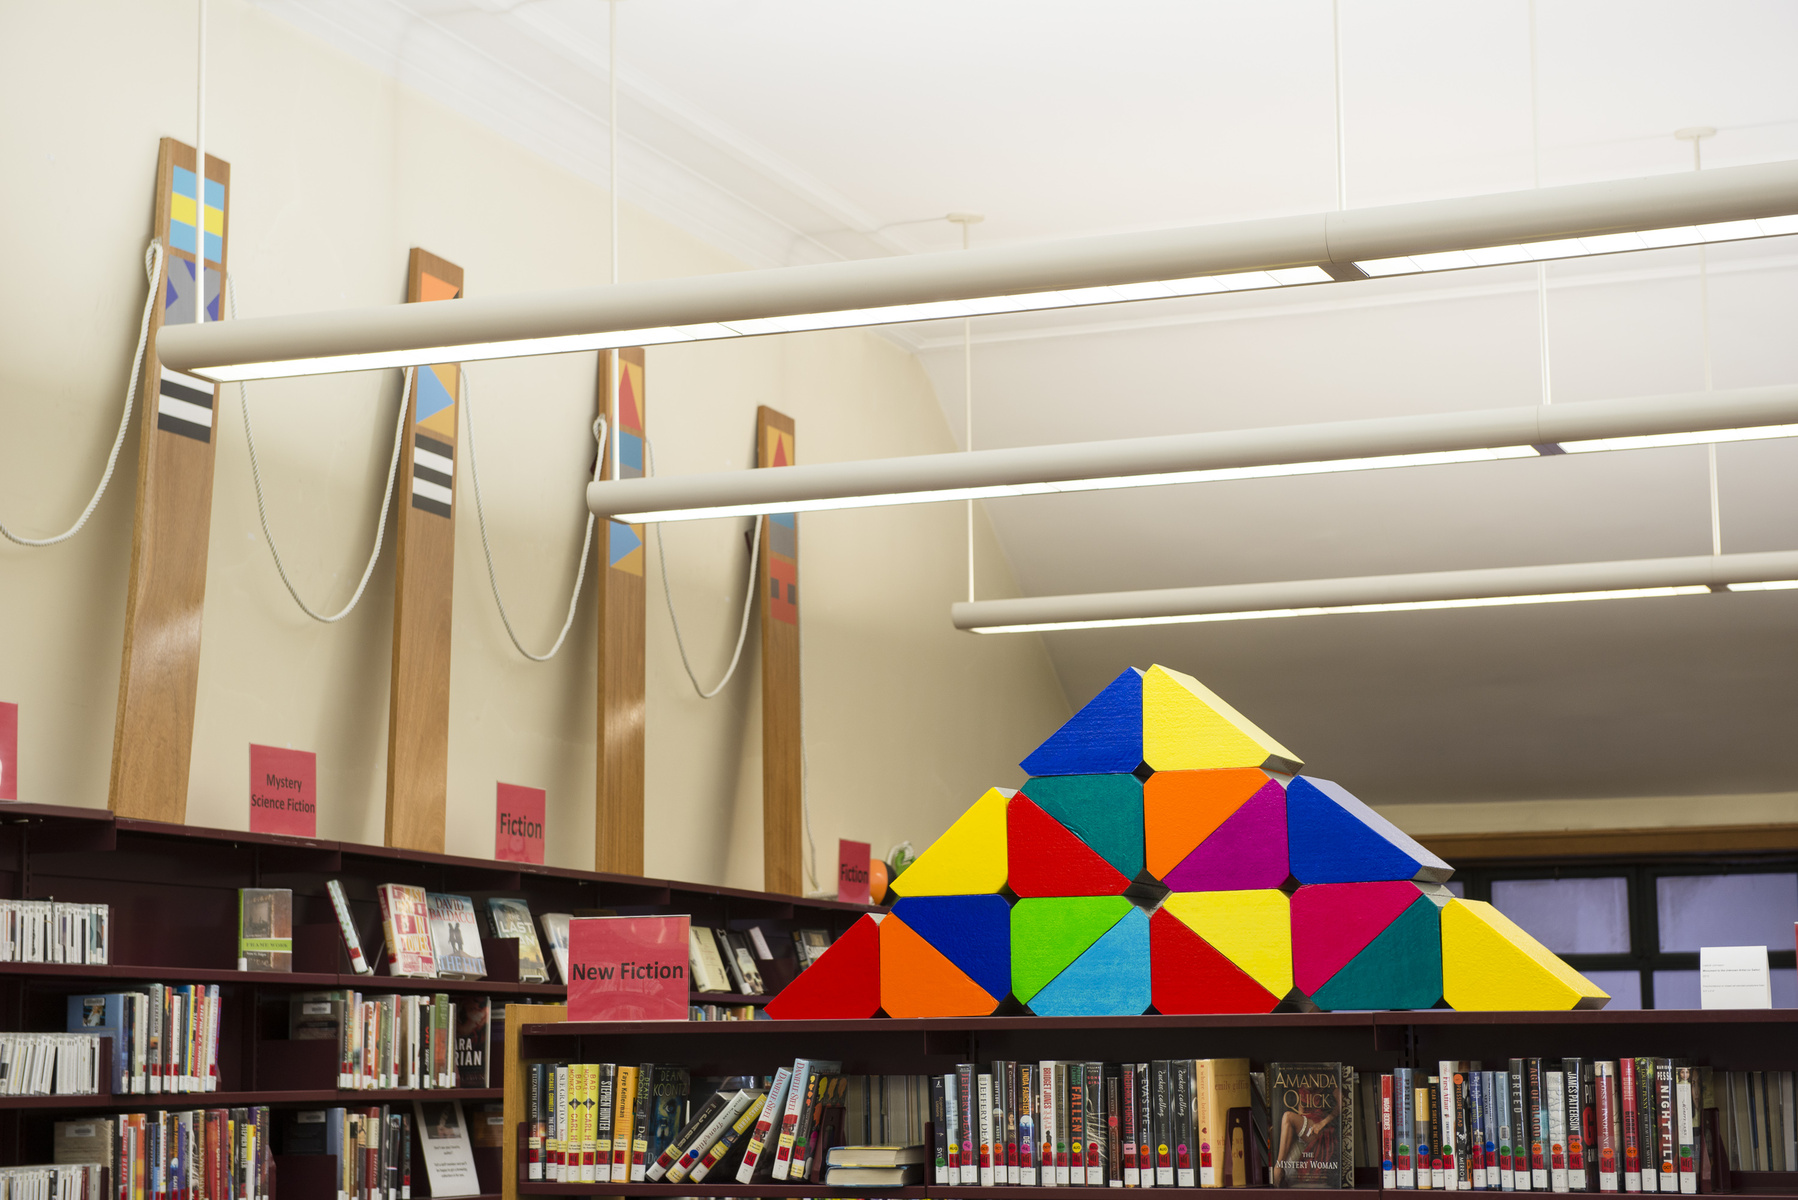 Pluralistic in a formal & spatial sense